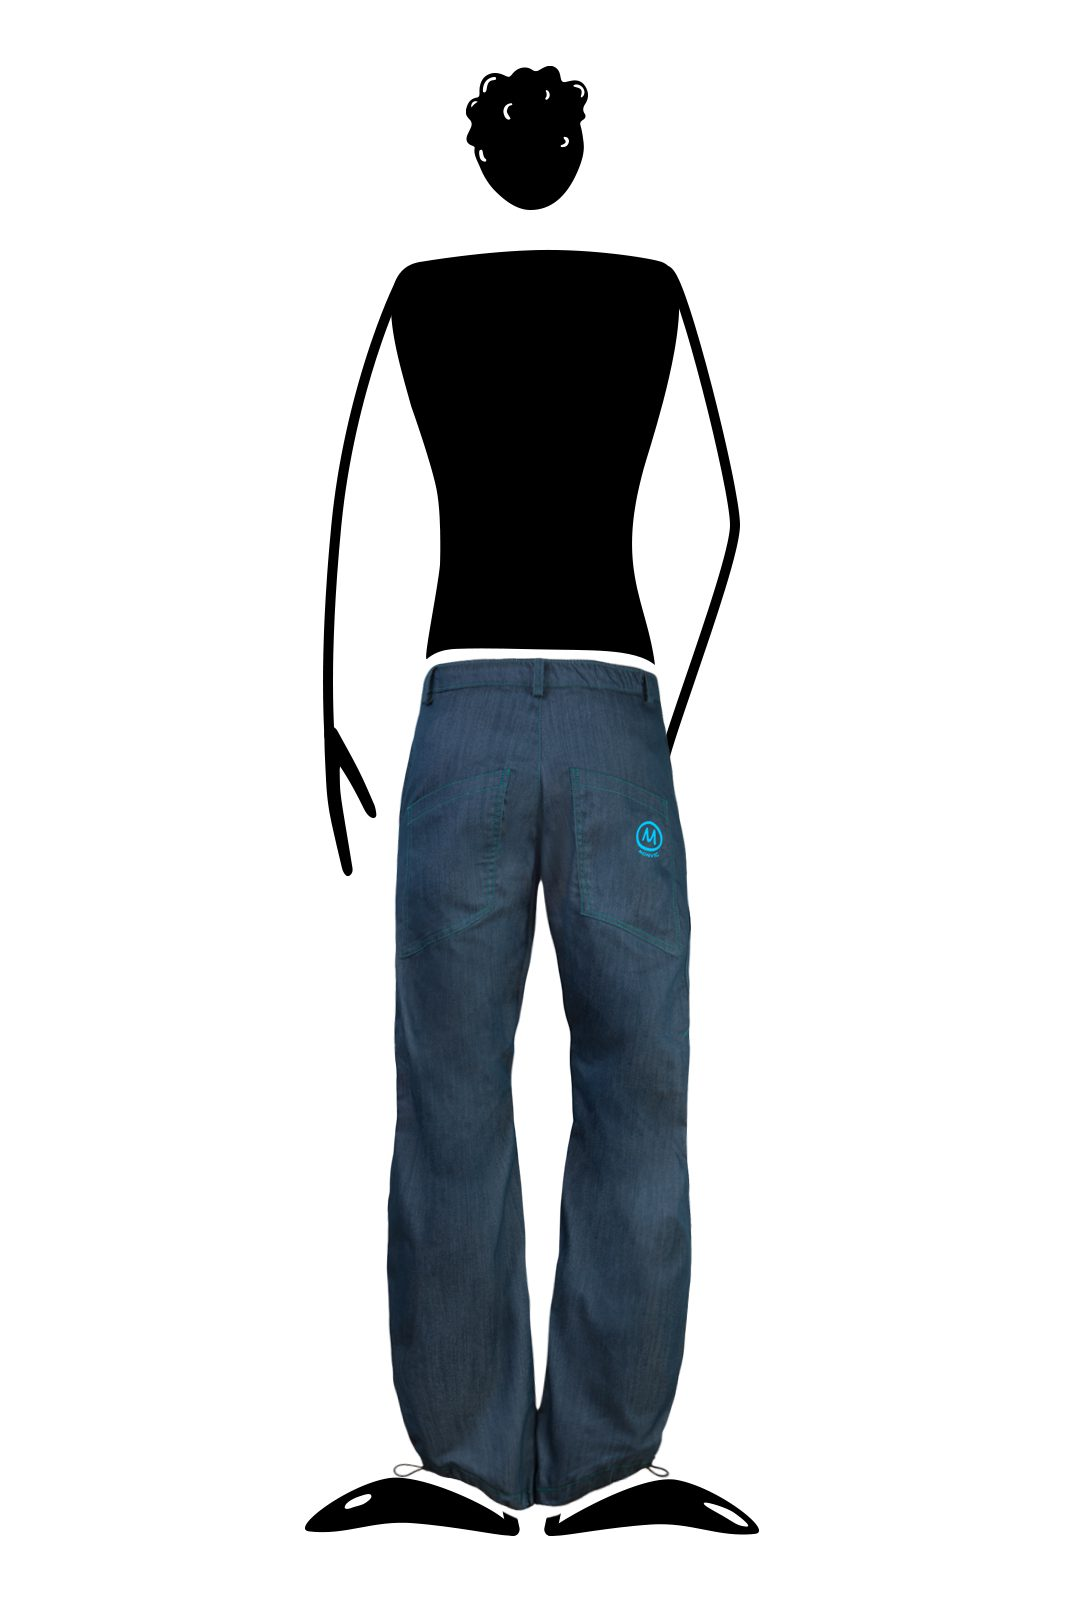 Jeans escalade pour homme coutures turquoise BILLY 2 Monvic